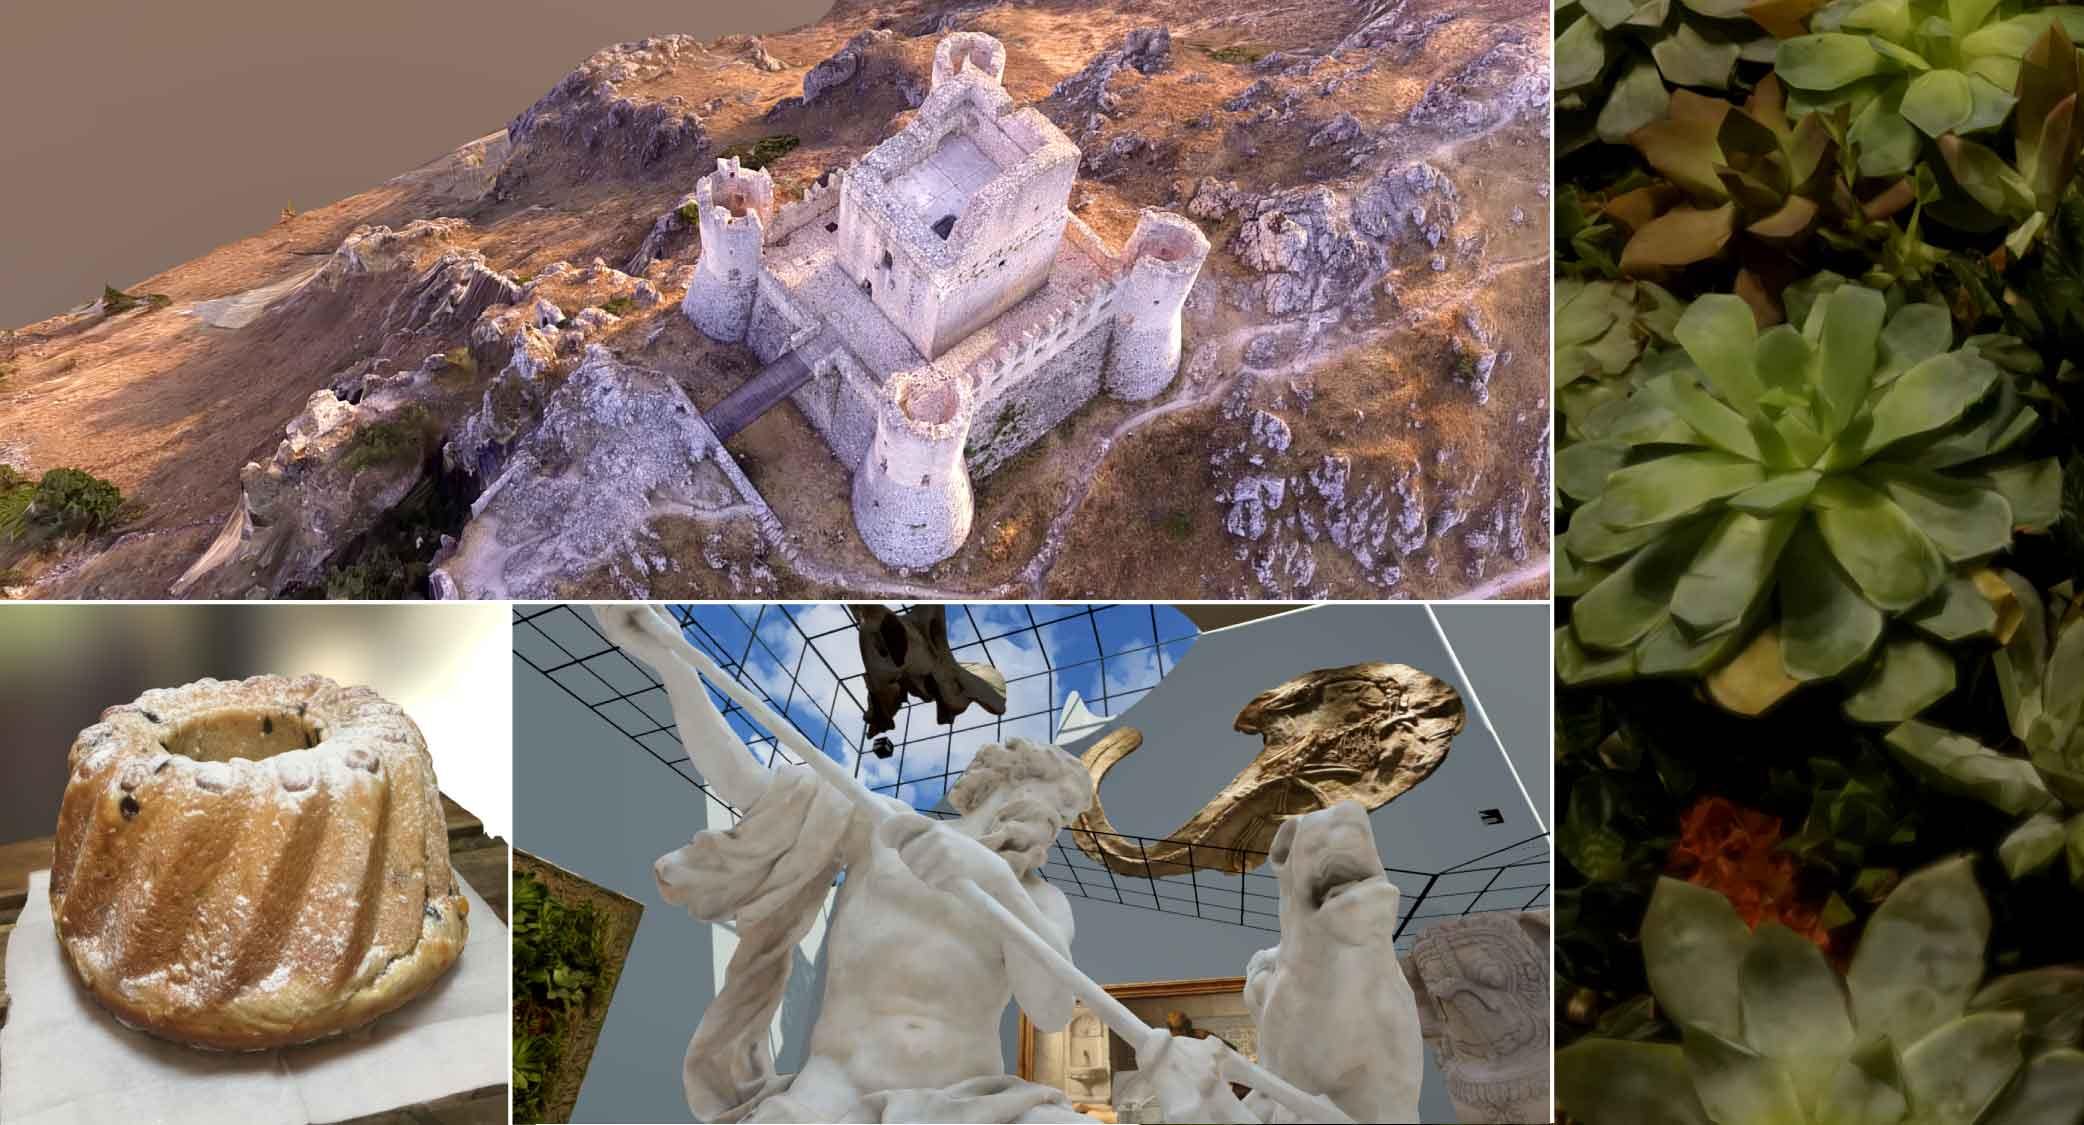 Introduction to photogrammetry – taking photo & generating 3D model